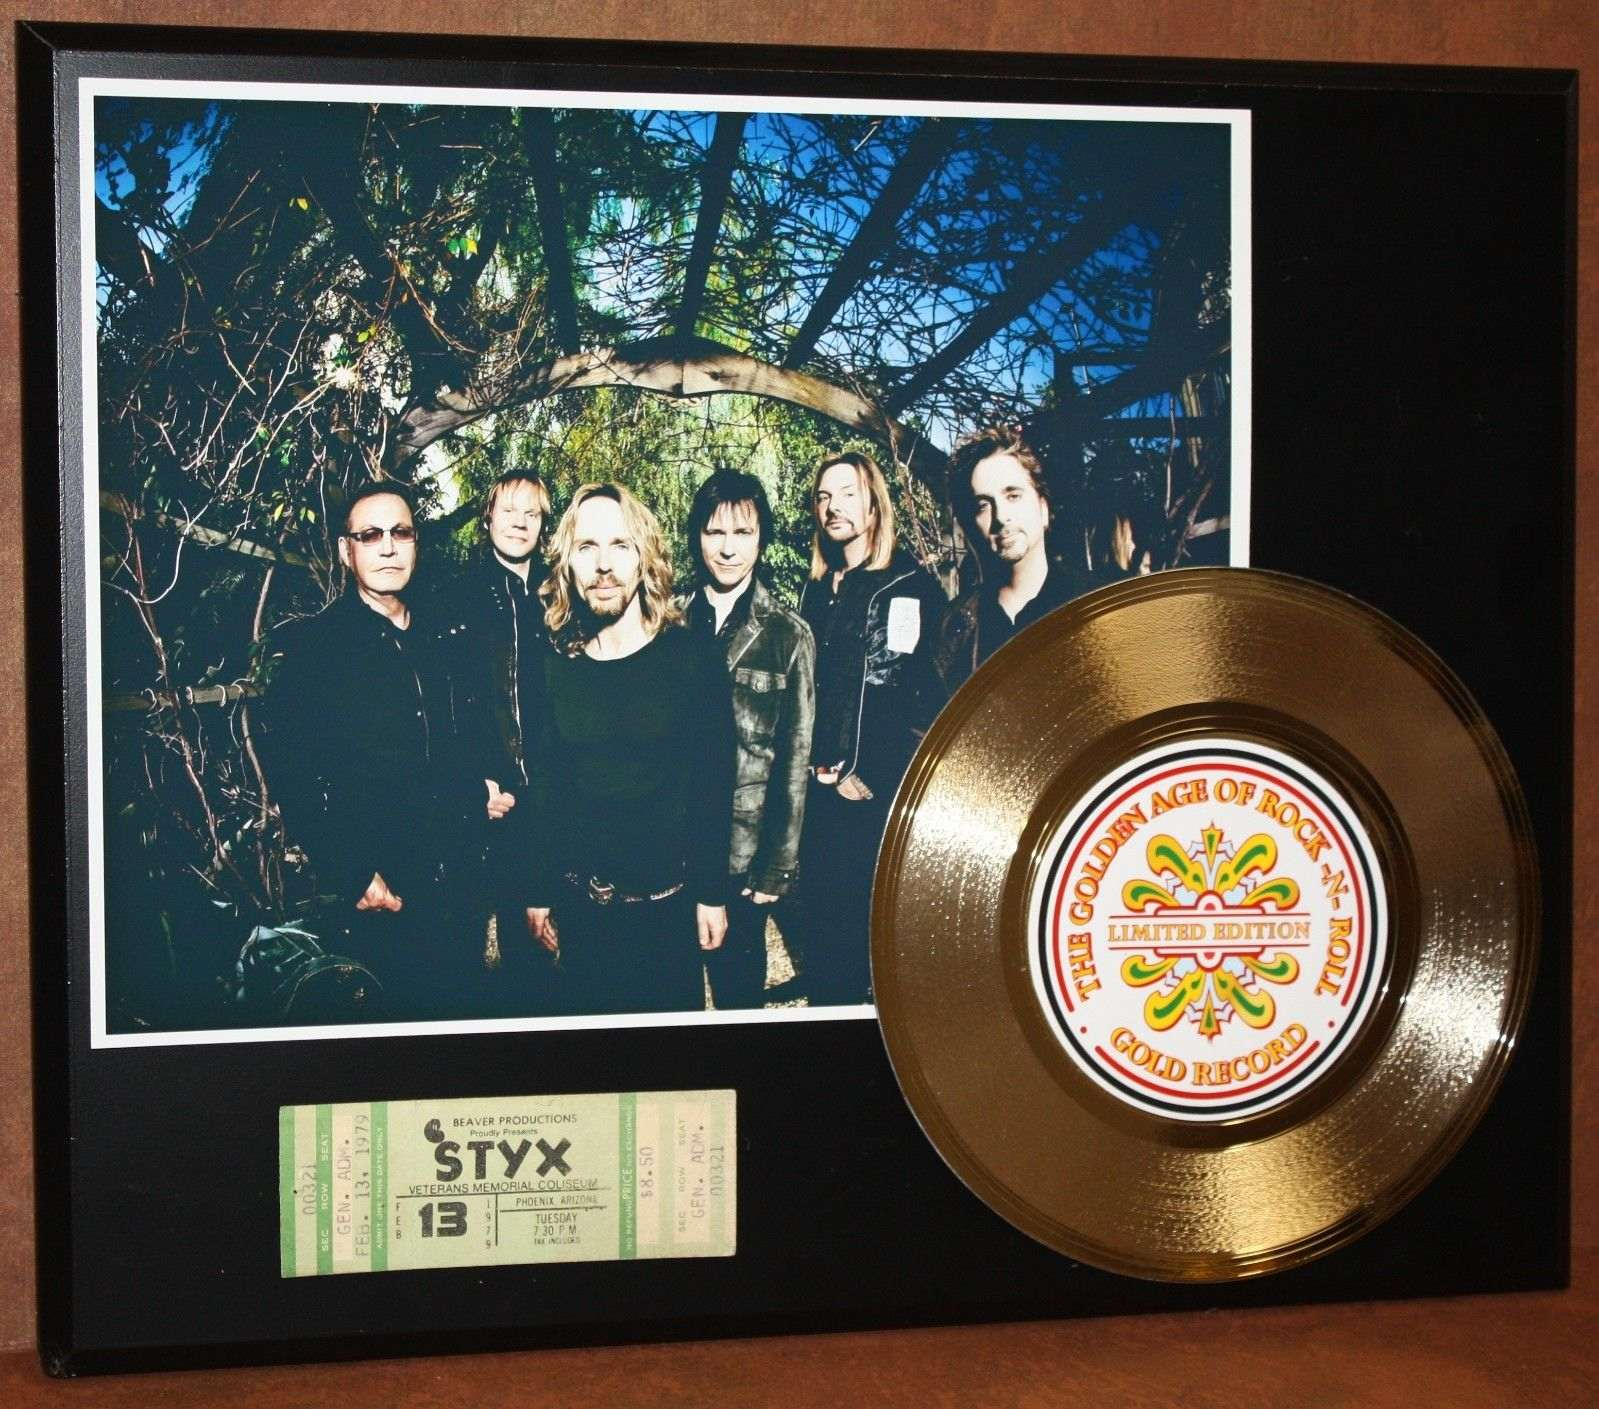 STYX CONCERT TICKET SERIES GOLD RECORD LIMITED EDITION DISPLAY ...